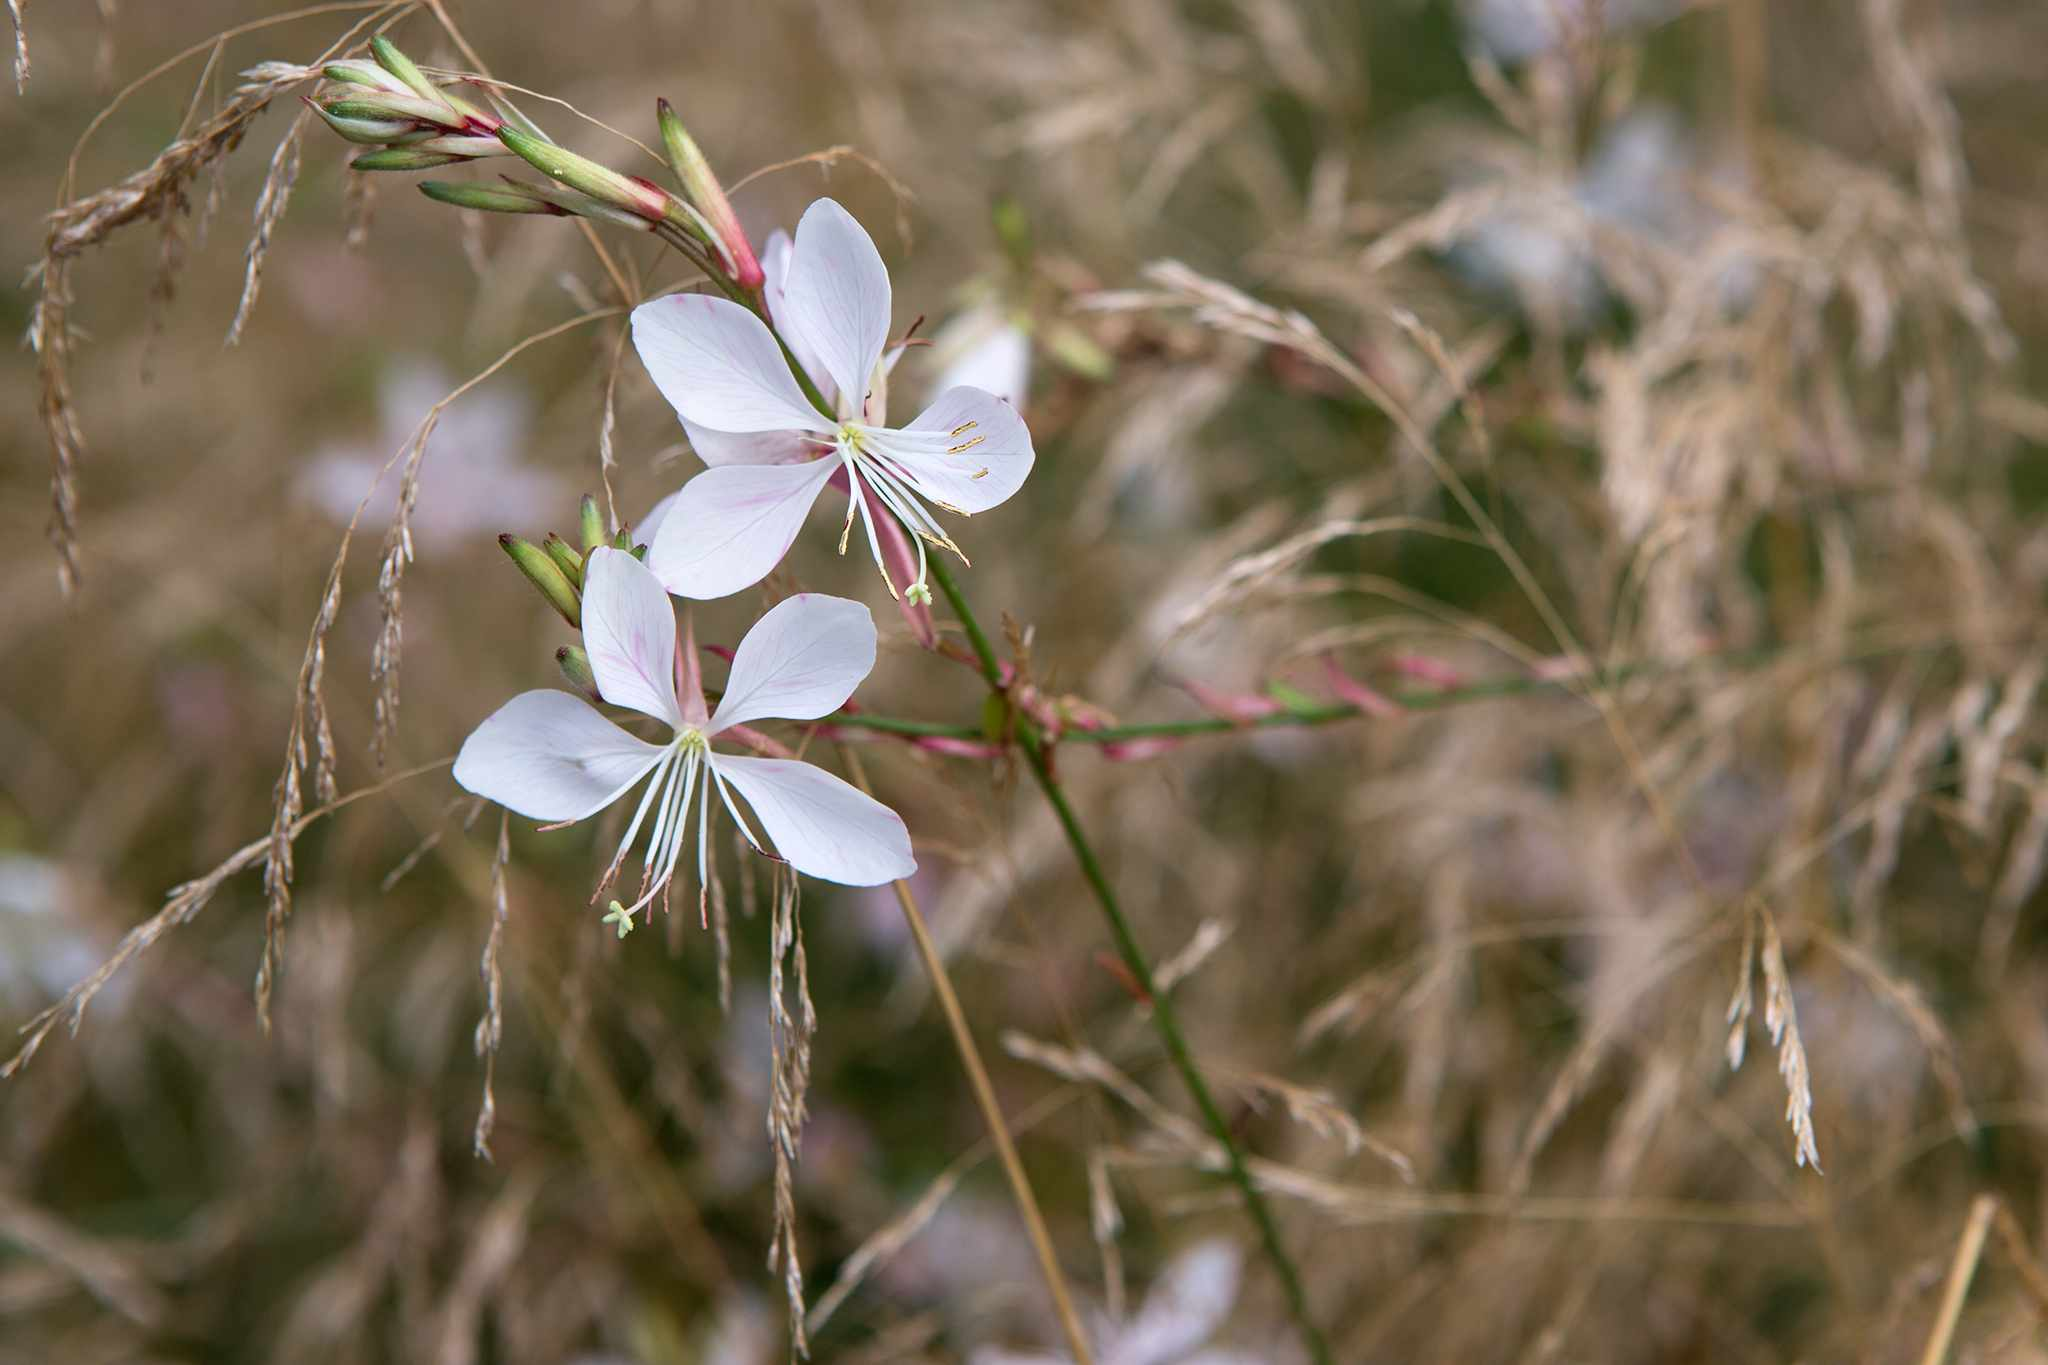 Gaura 'Rosy Hardy' growing with ornamental grasses